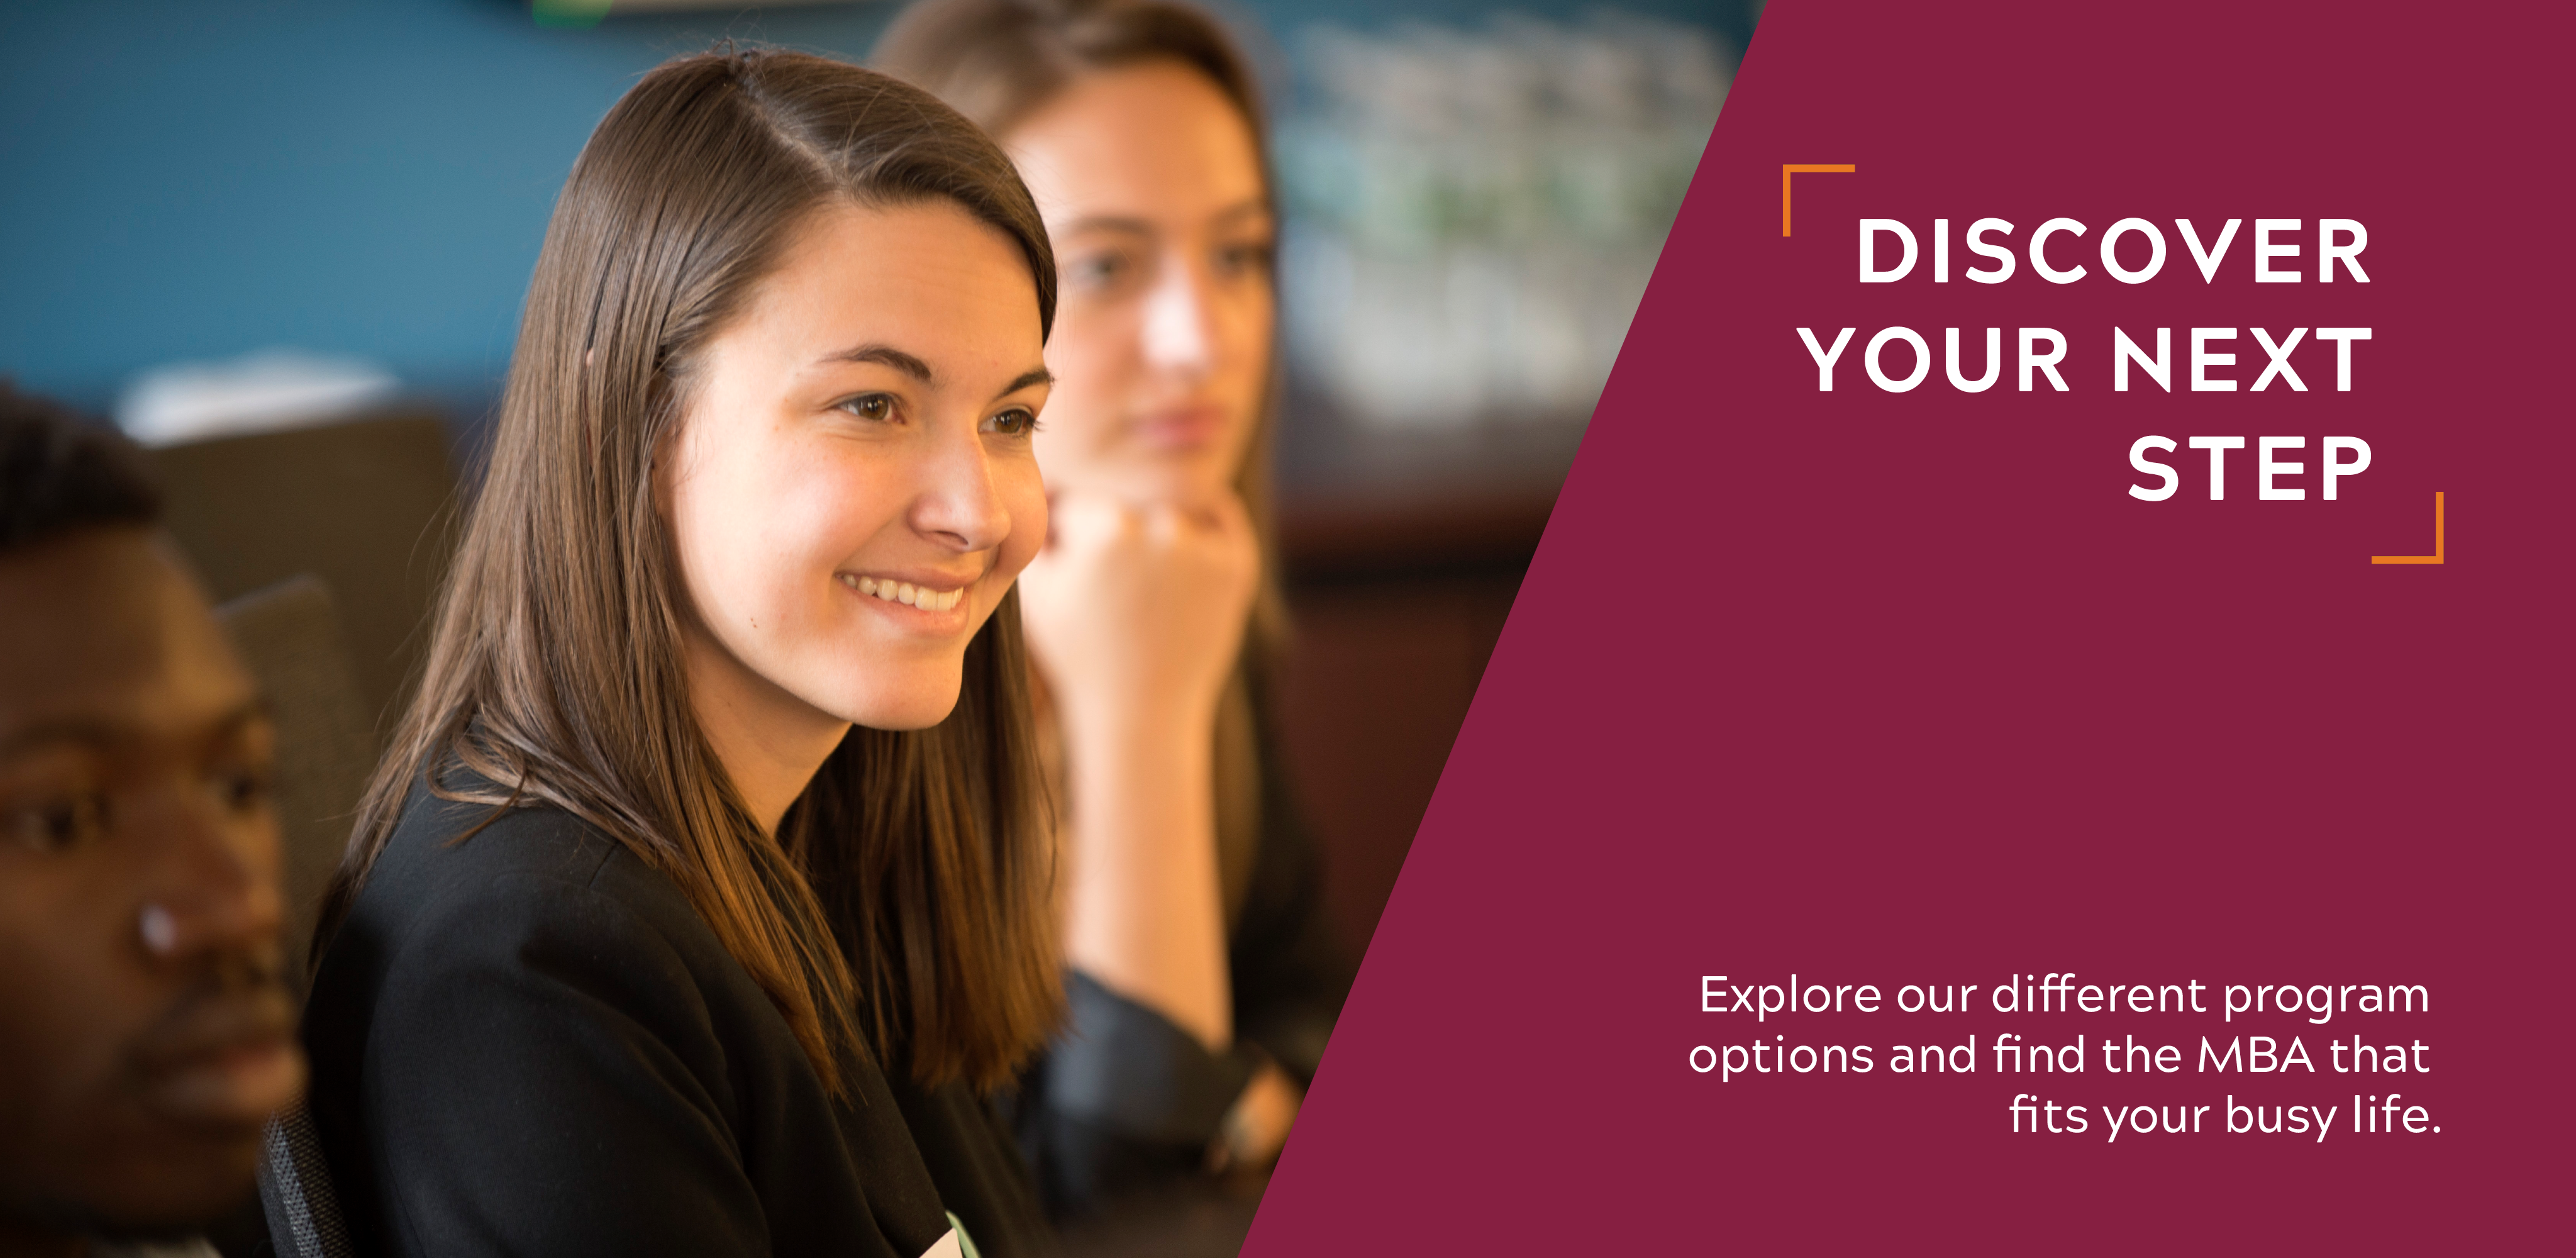 Explore our different program options and find the MBA that fits your busy life.